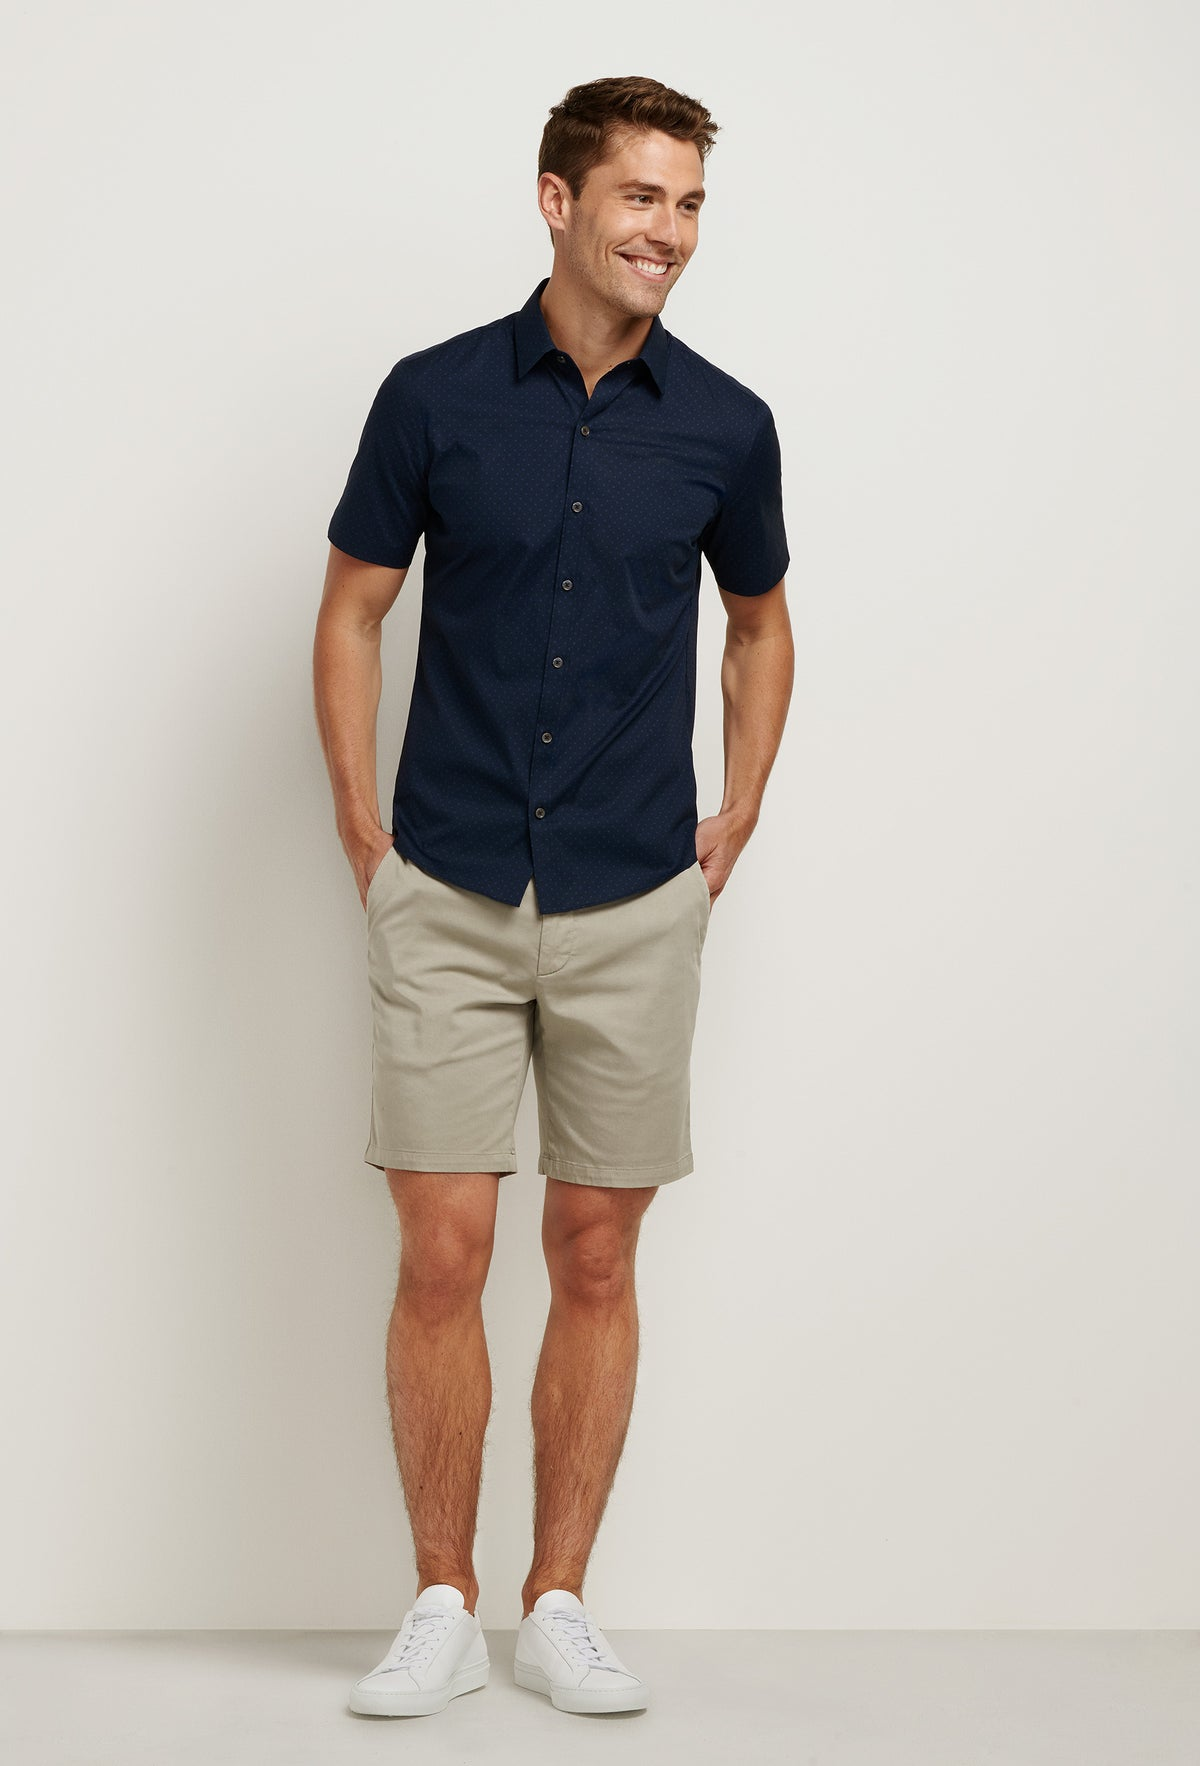 ZACHARY-PRELL-Mendez-ShirtsModern-Menswear-New-Dress-Code